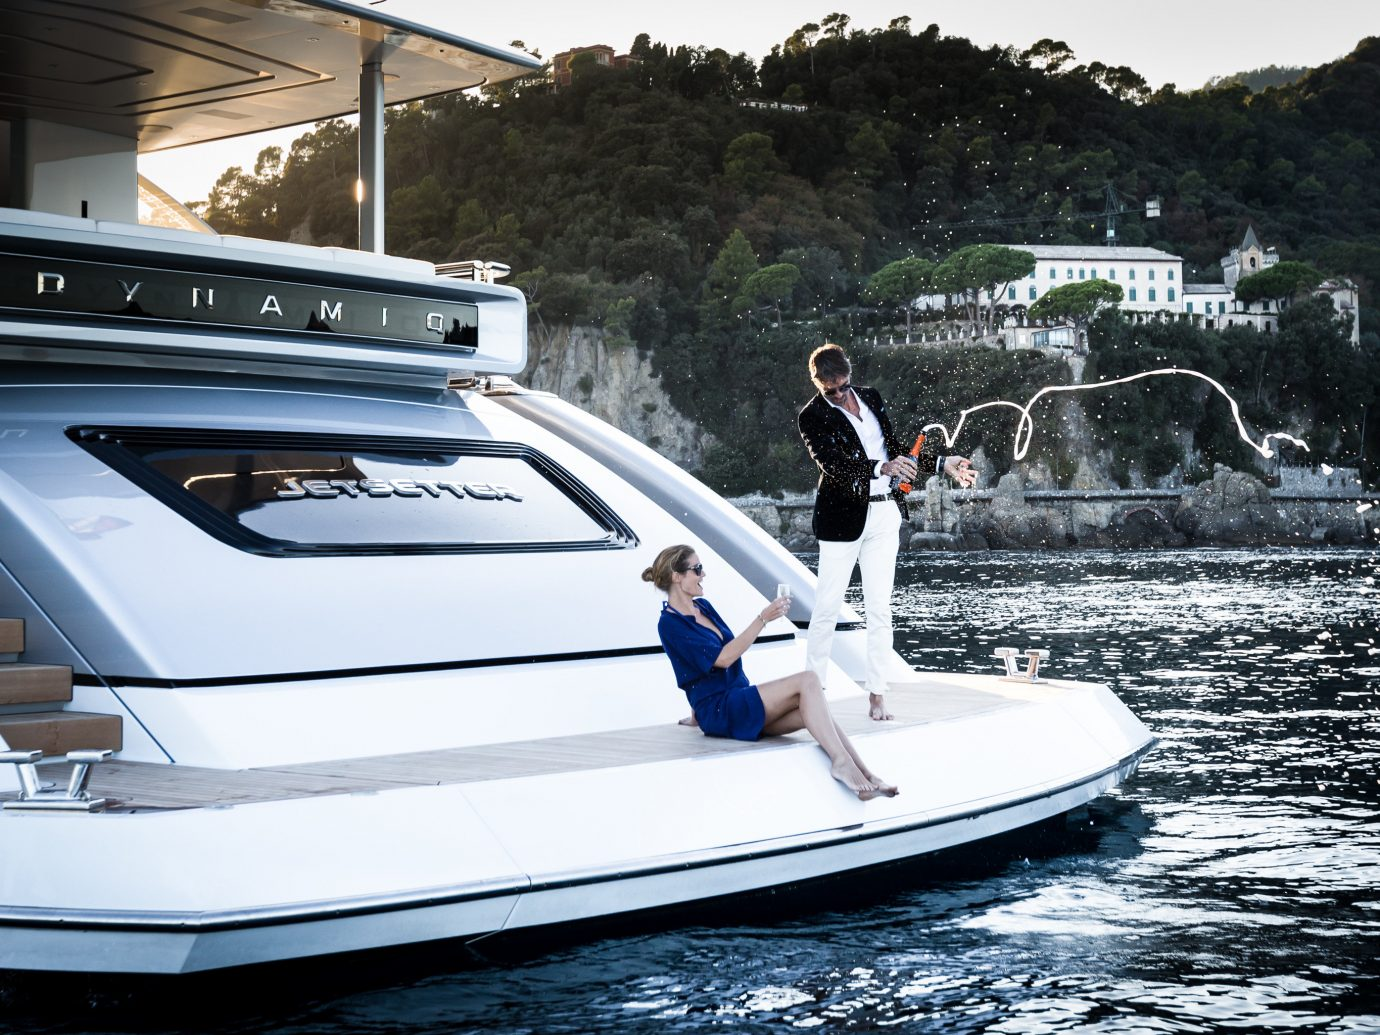 Luxury Travel Trip Ideas outdoor vehicle Boat ecosystem passenger ship motorboat yacht watercraft boating luxury yacht inflatable boat skiff